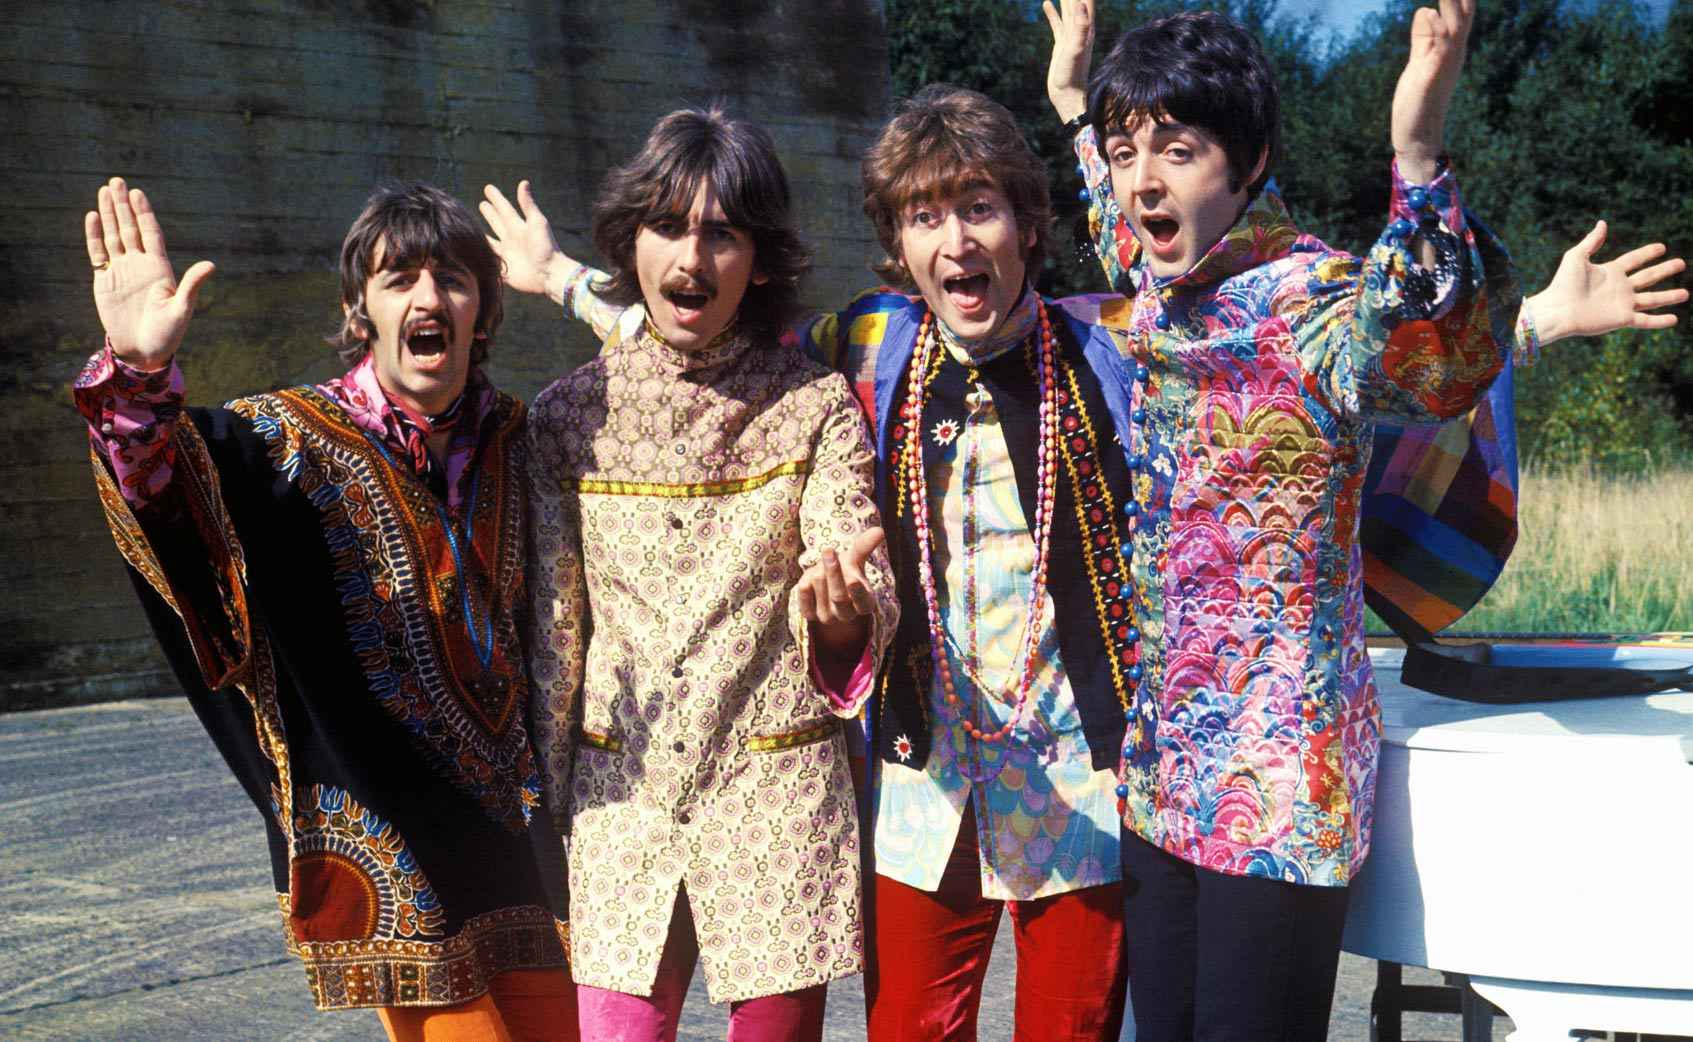 George Harrison Guitar Strings Press photo of The Beatles during Magical Mystery Tour